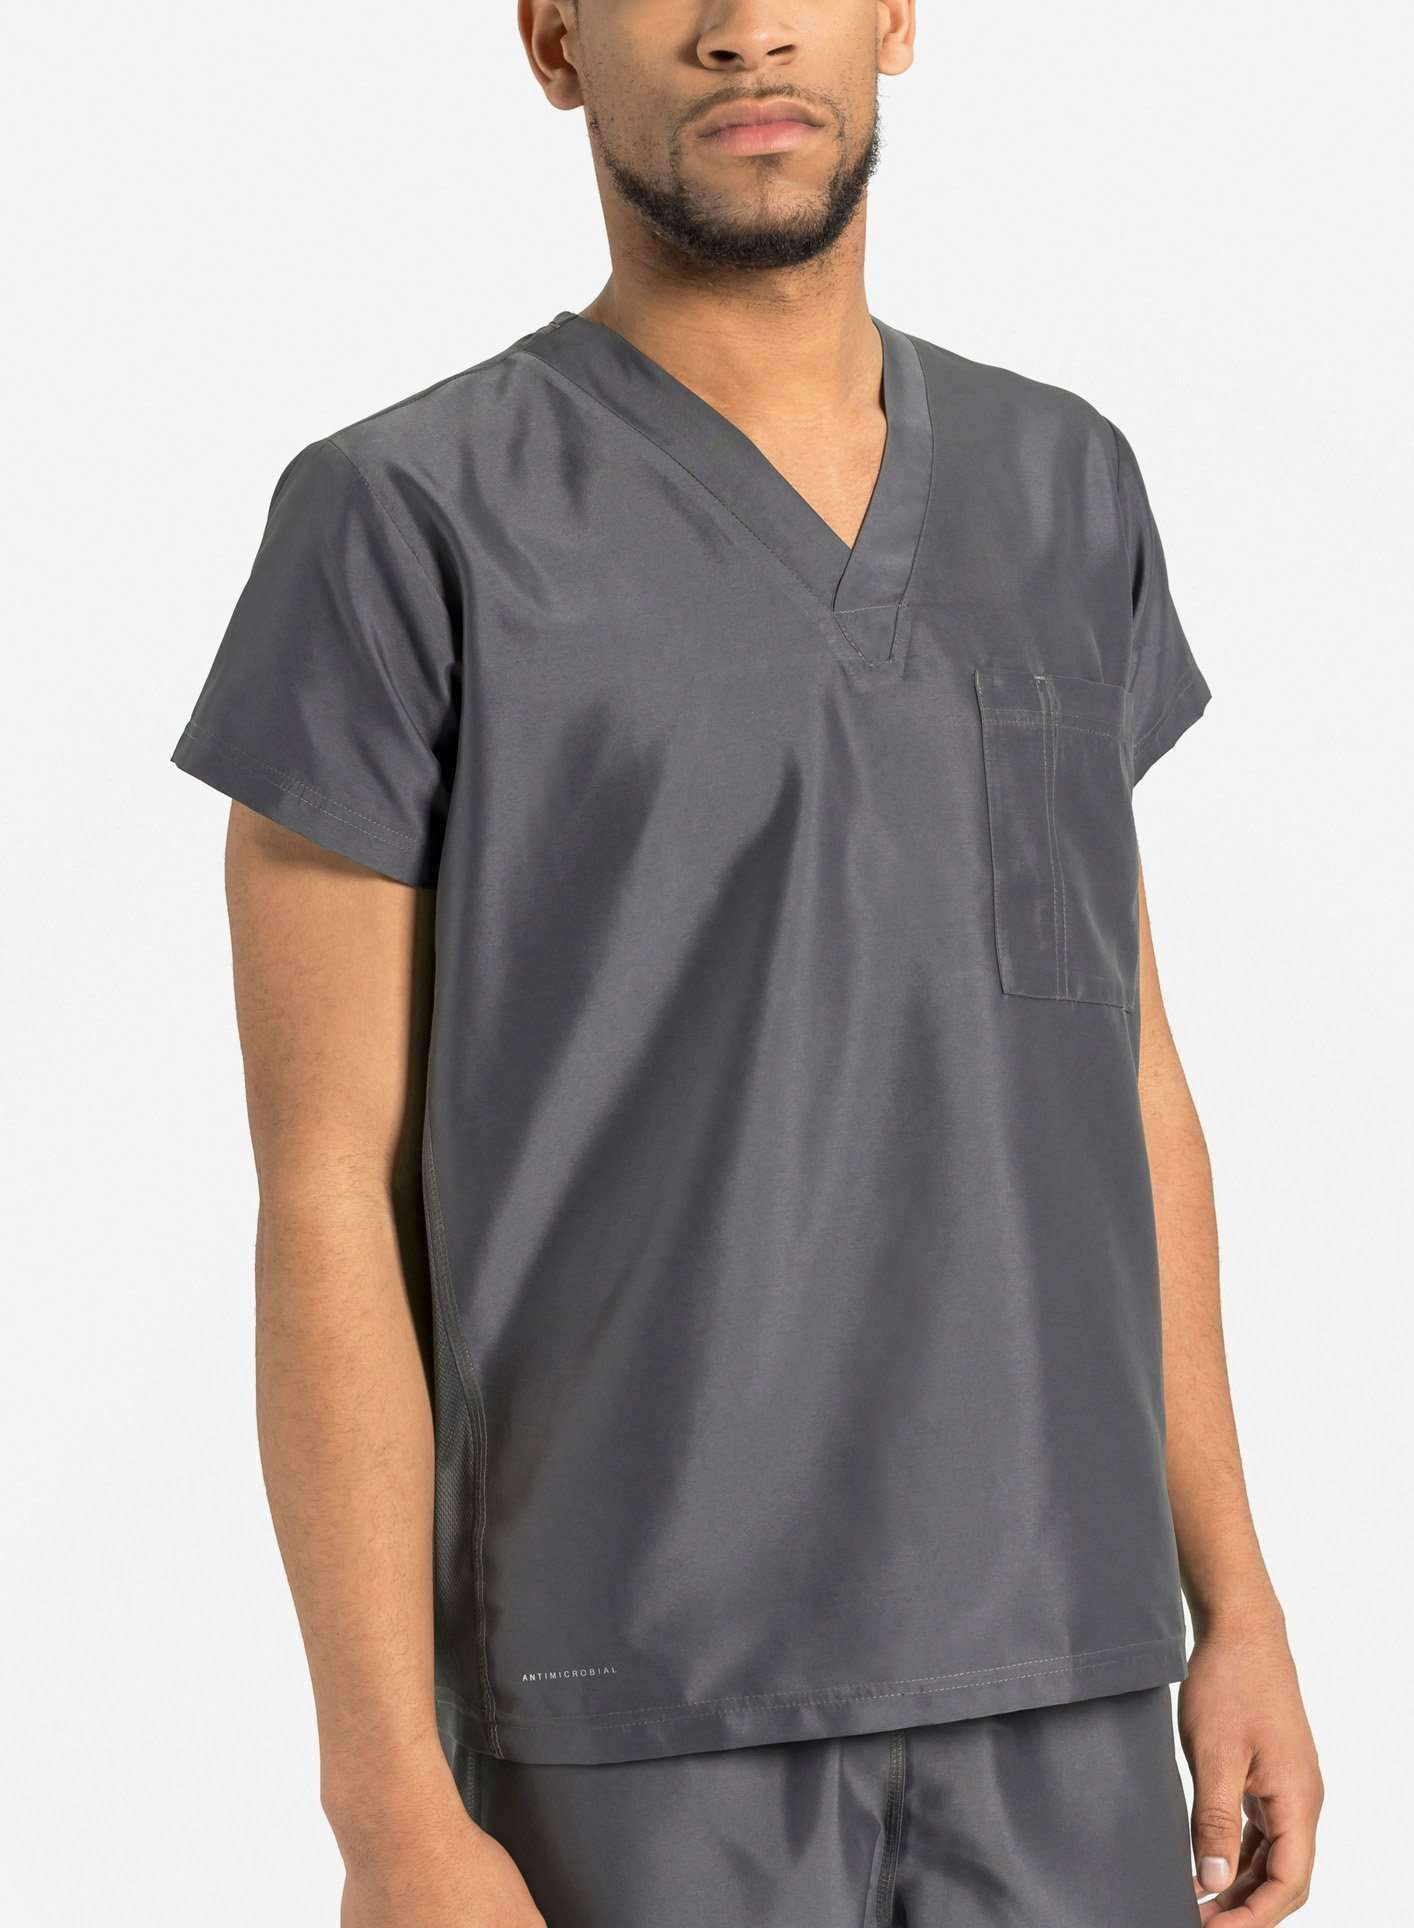 mens Elements short sleeve classic one pocket scrub top dark grey